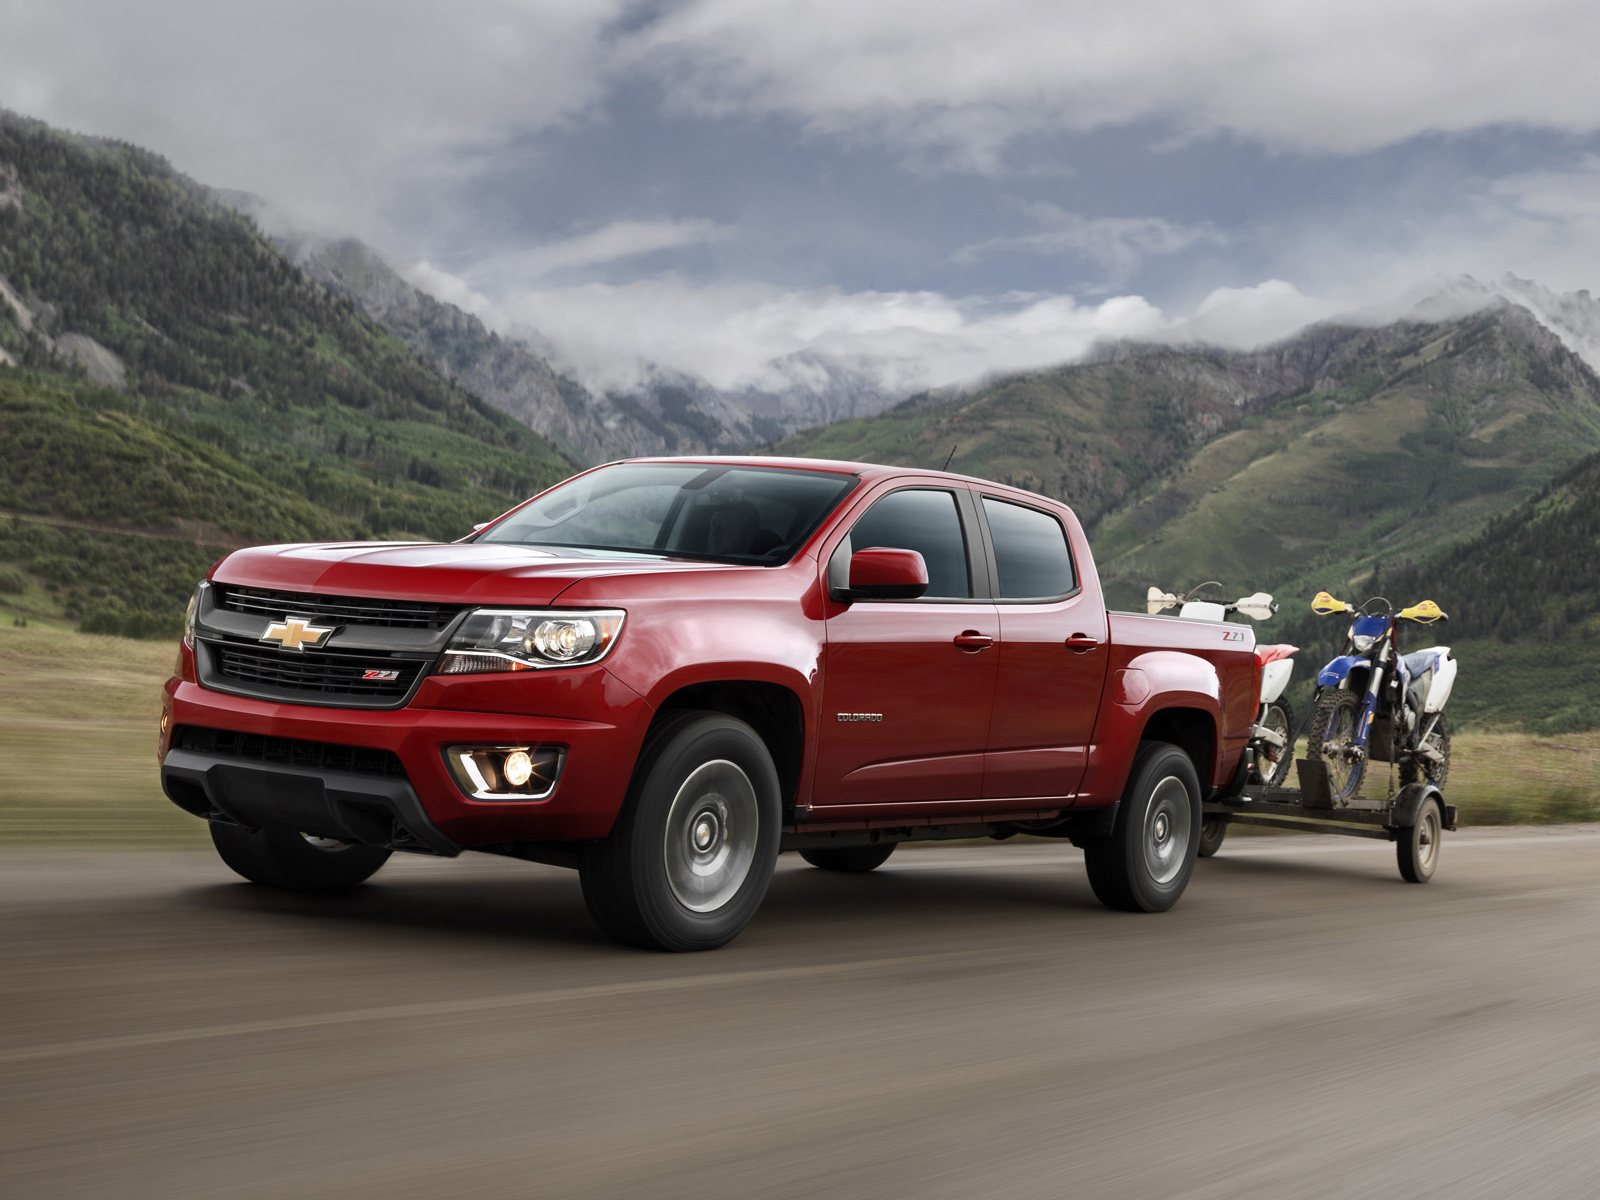 Chevrolet Colorado Wallpaper Fullscreen HD